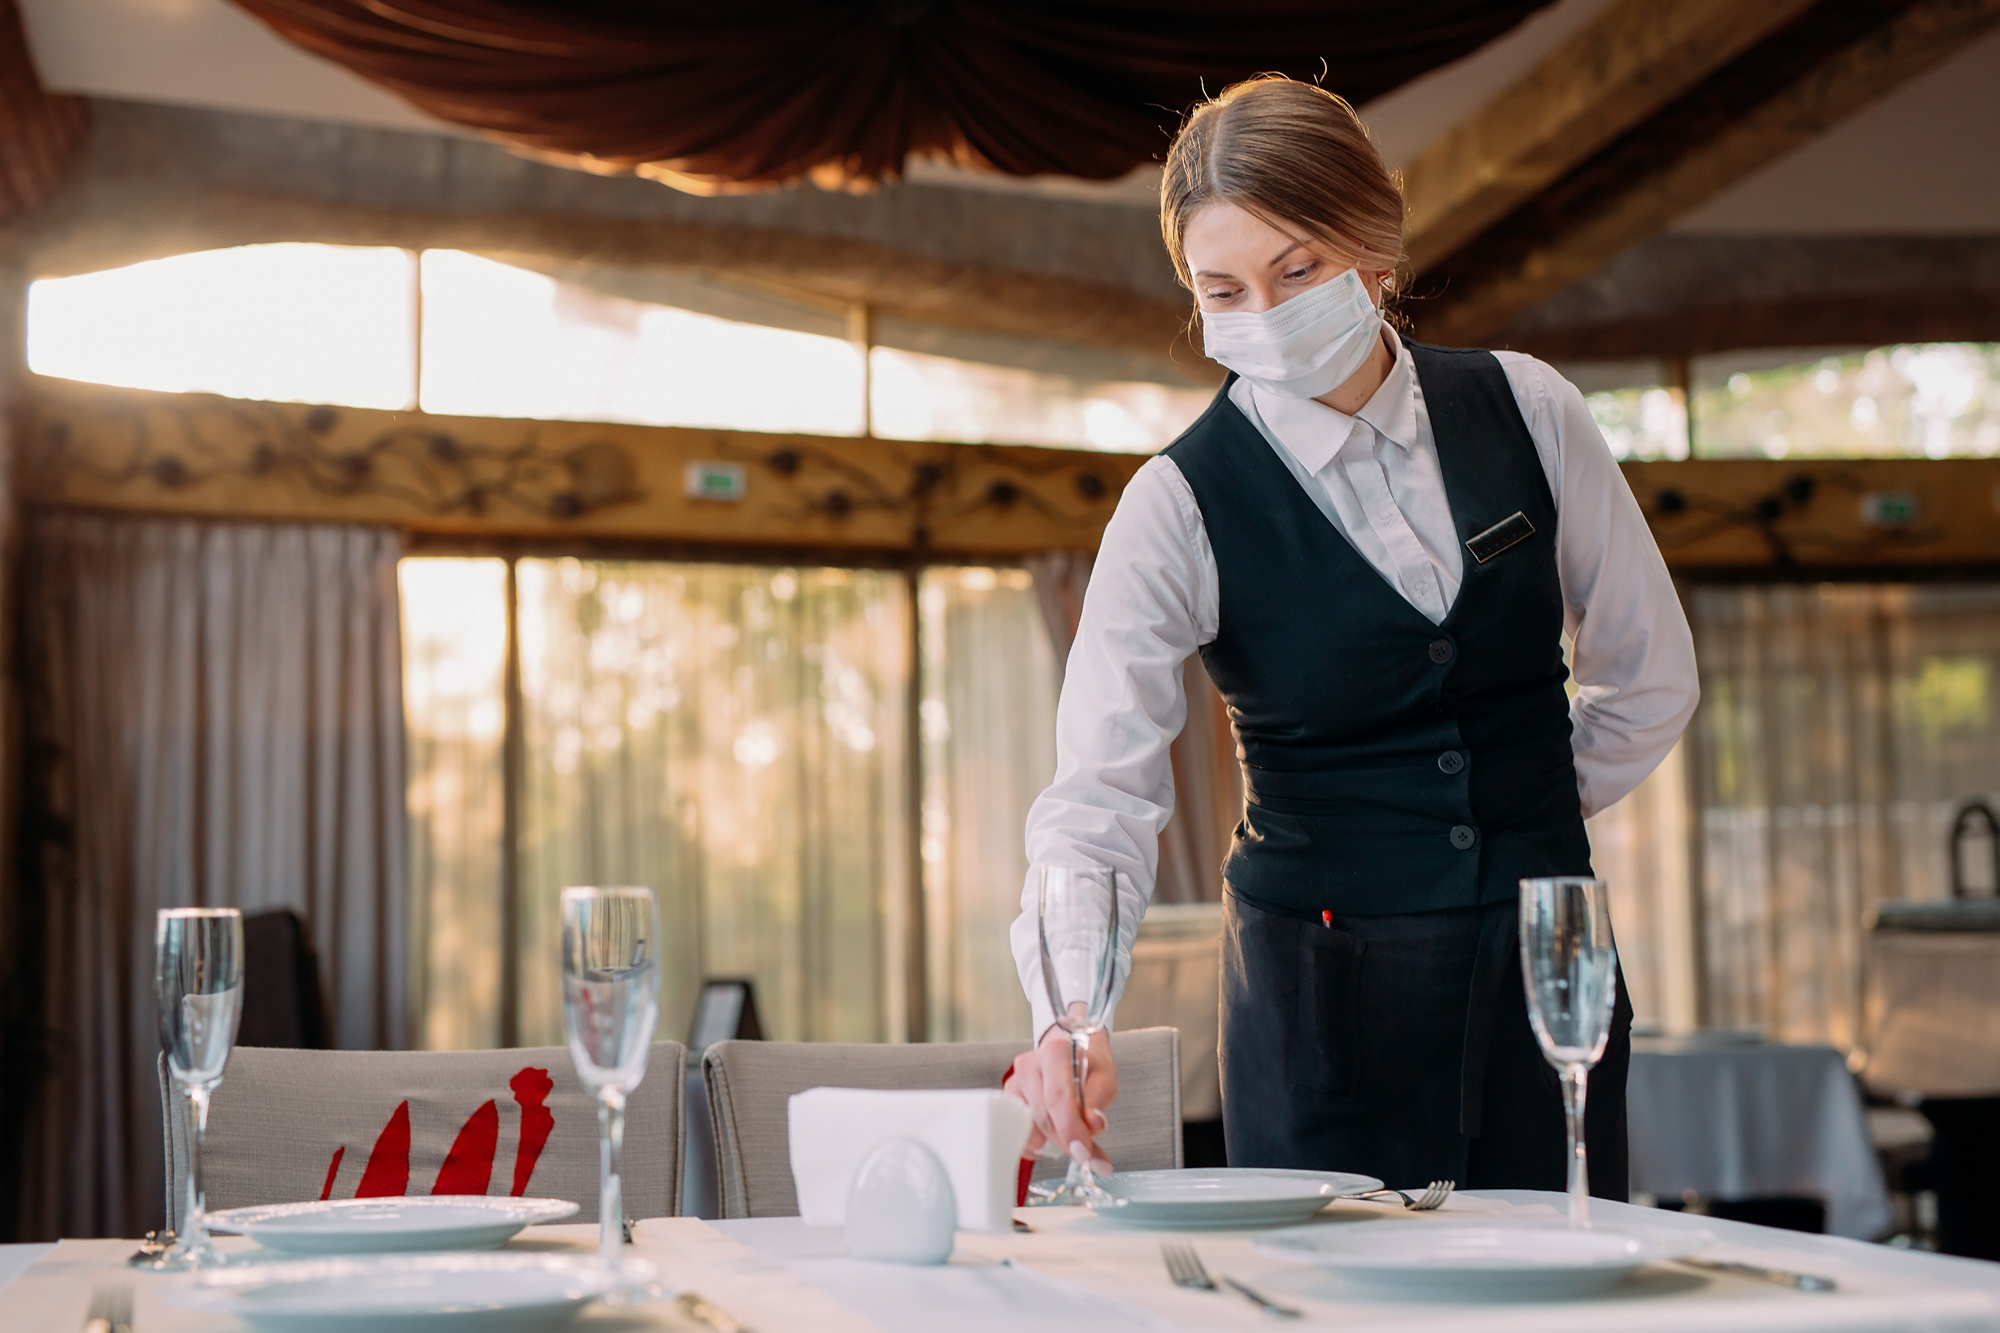 what-diners-epidemiologists-want-post-covid-restaurants-FT-BLOG0520-3